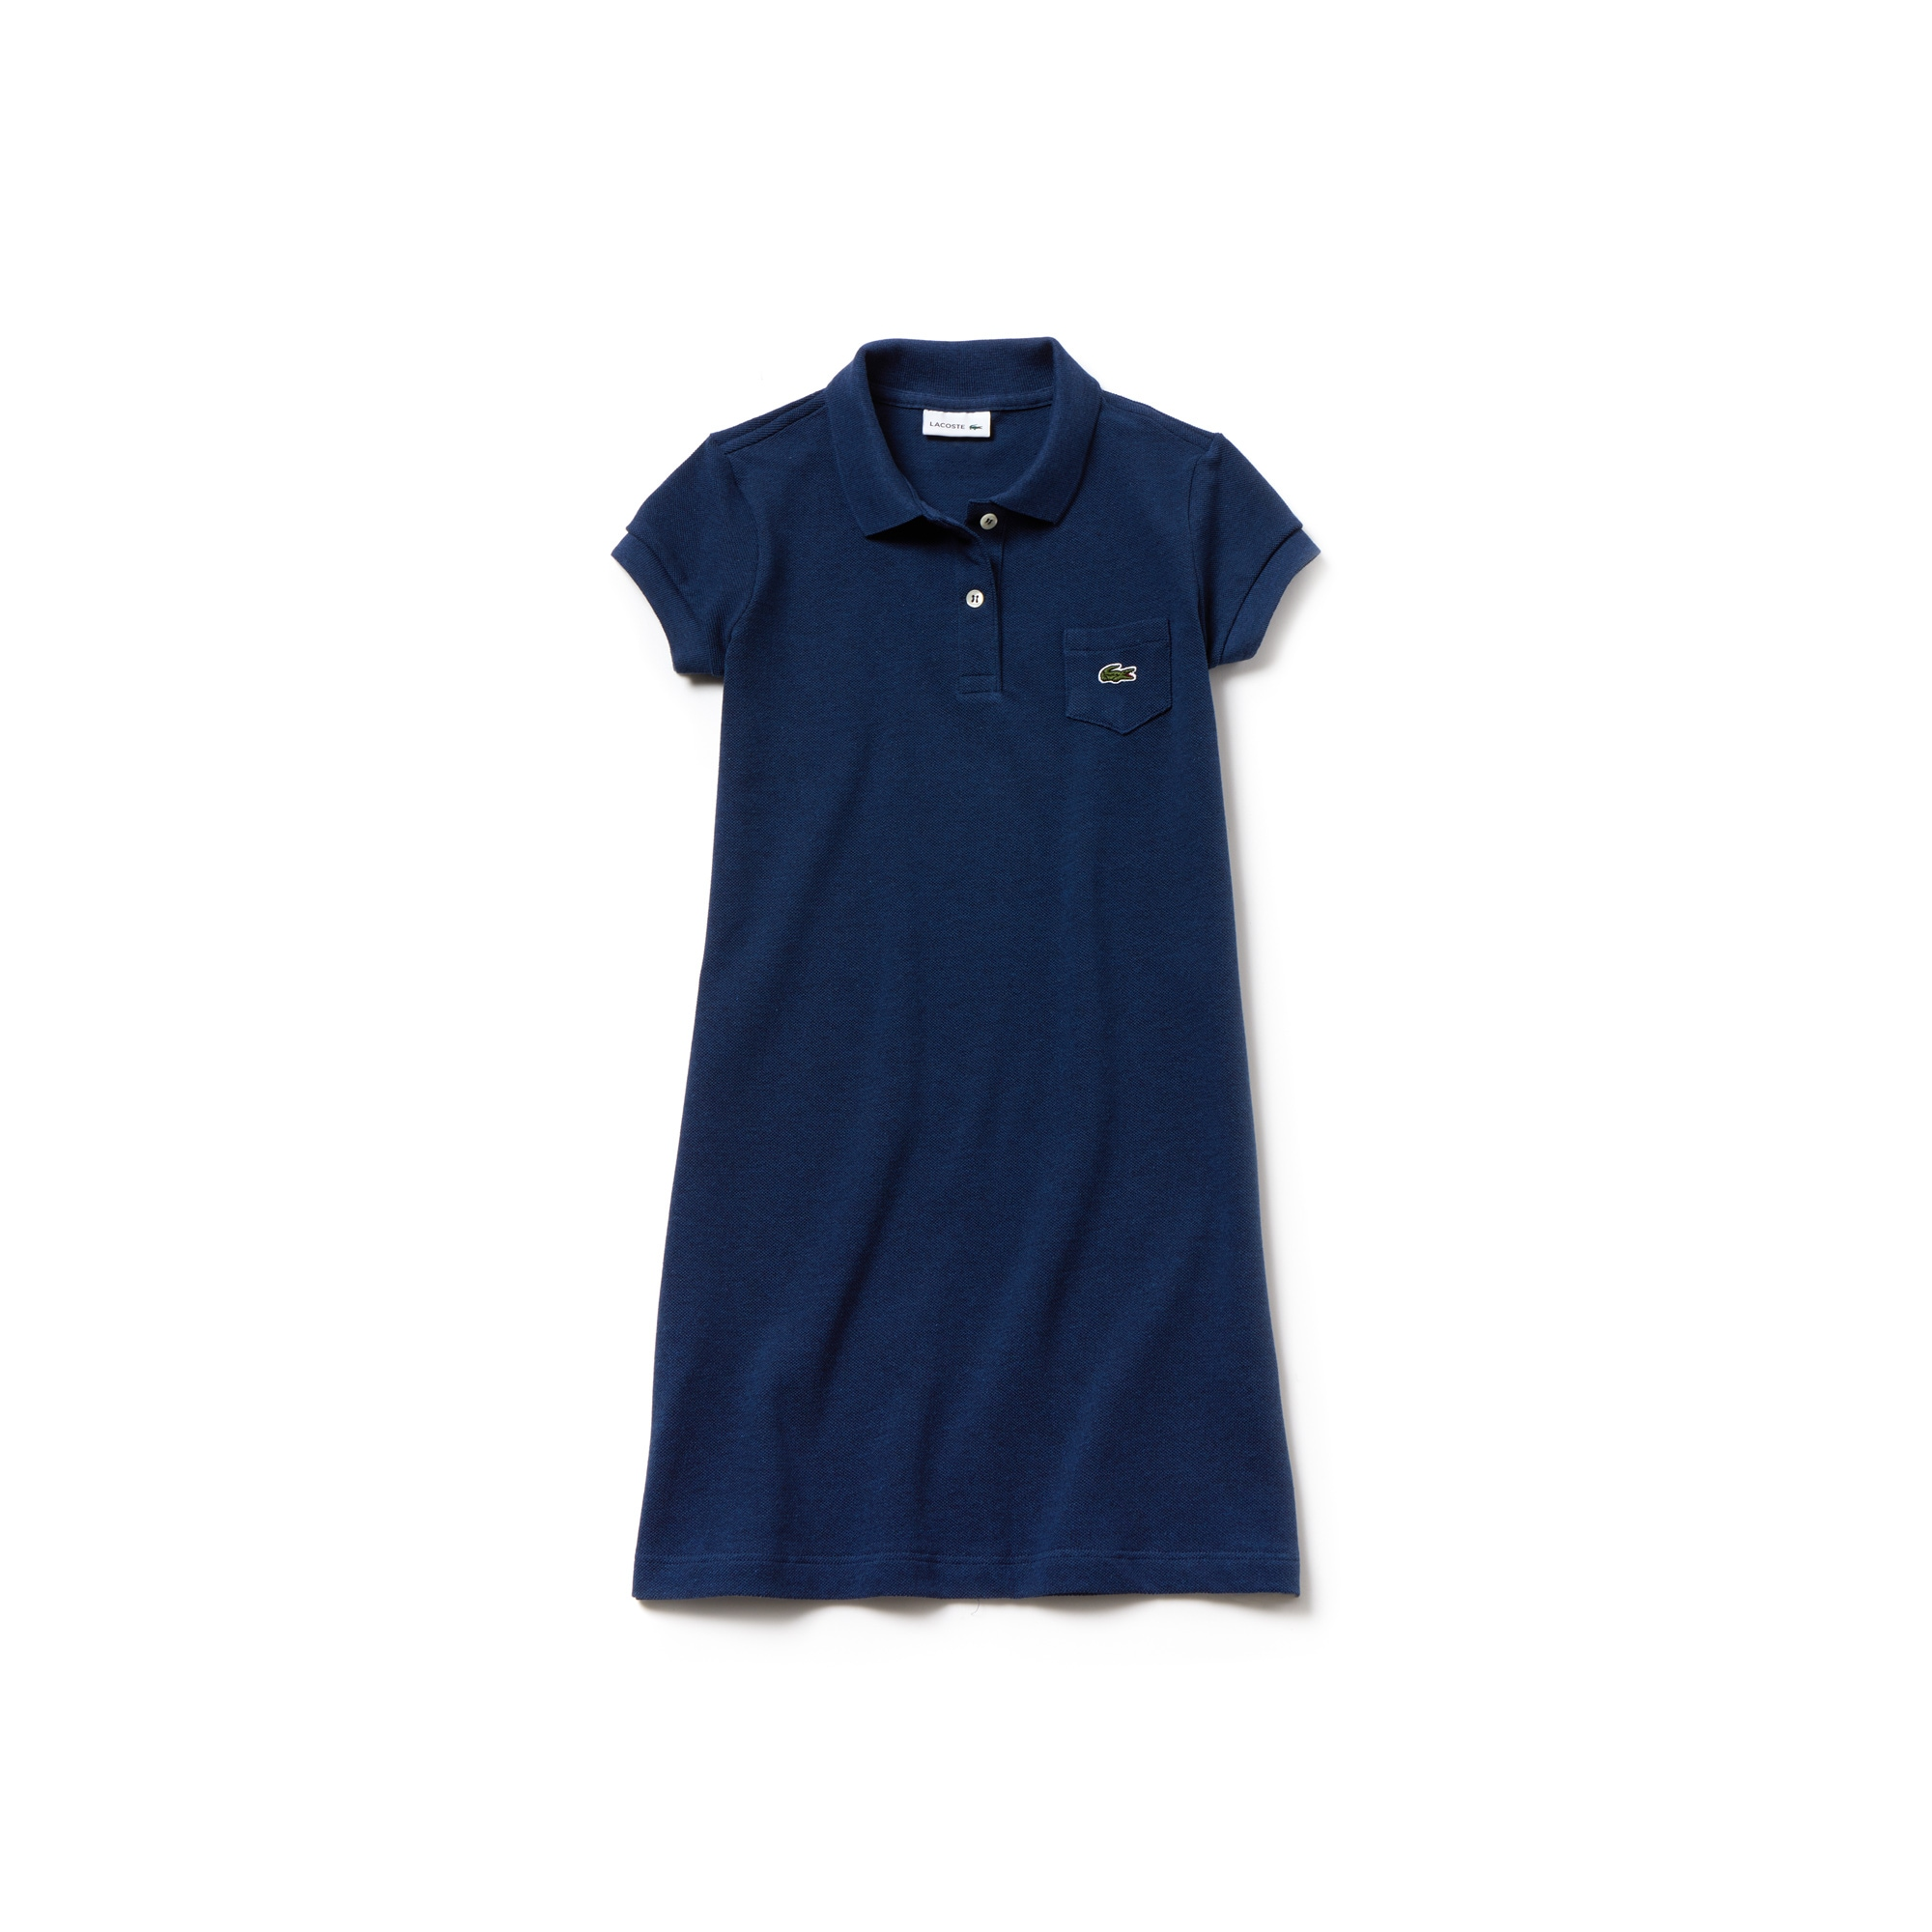 Girls' flared dress in solid mini piqué cotton